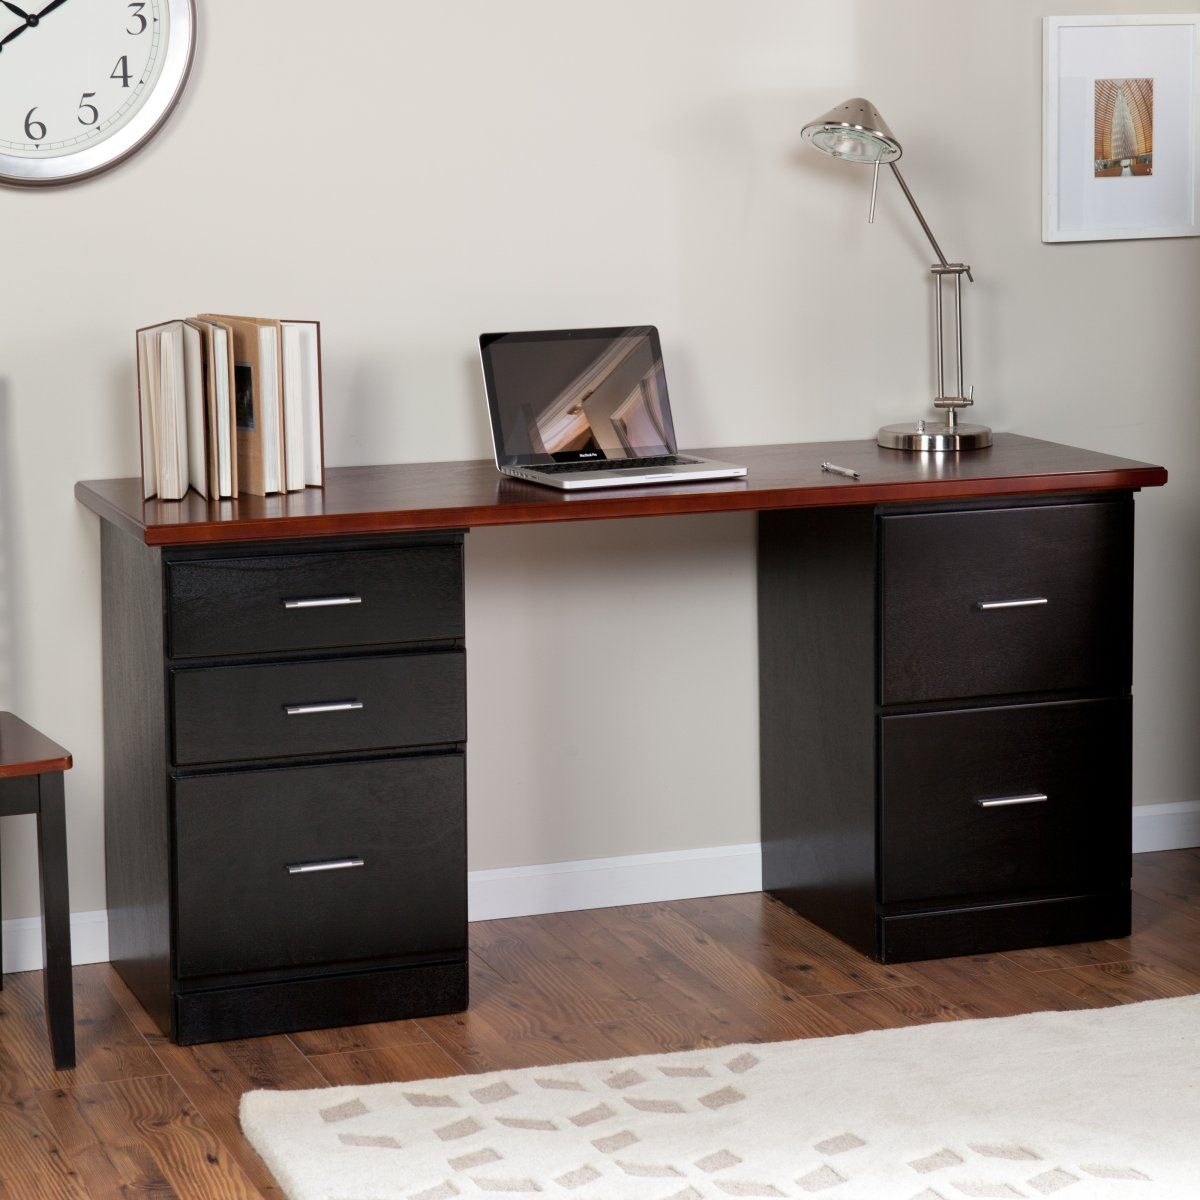 Modern Desk With Drawers Reviewed by National Furniture Supply on